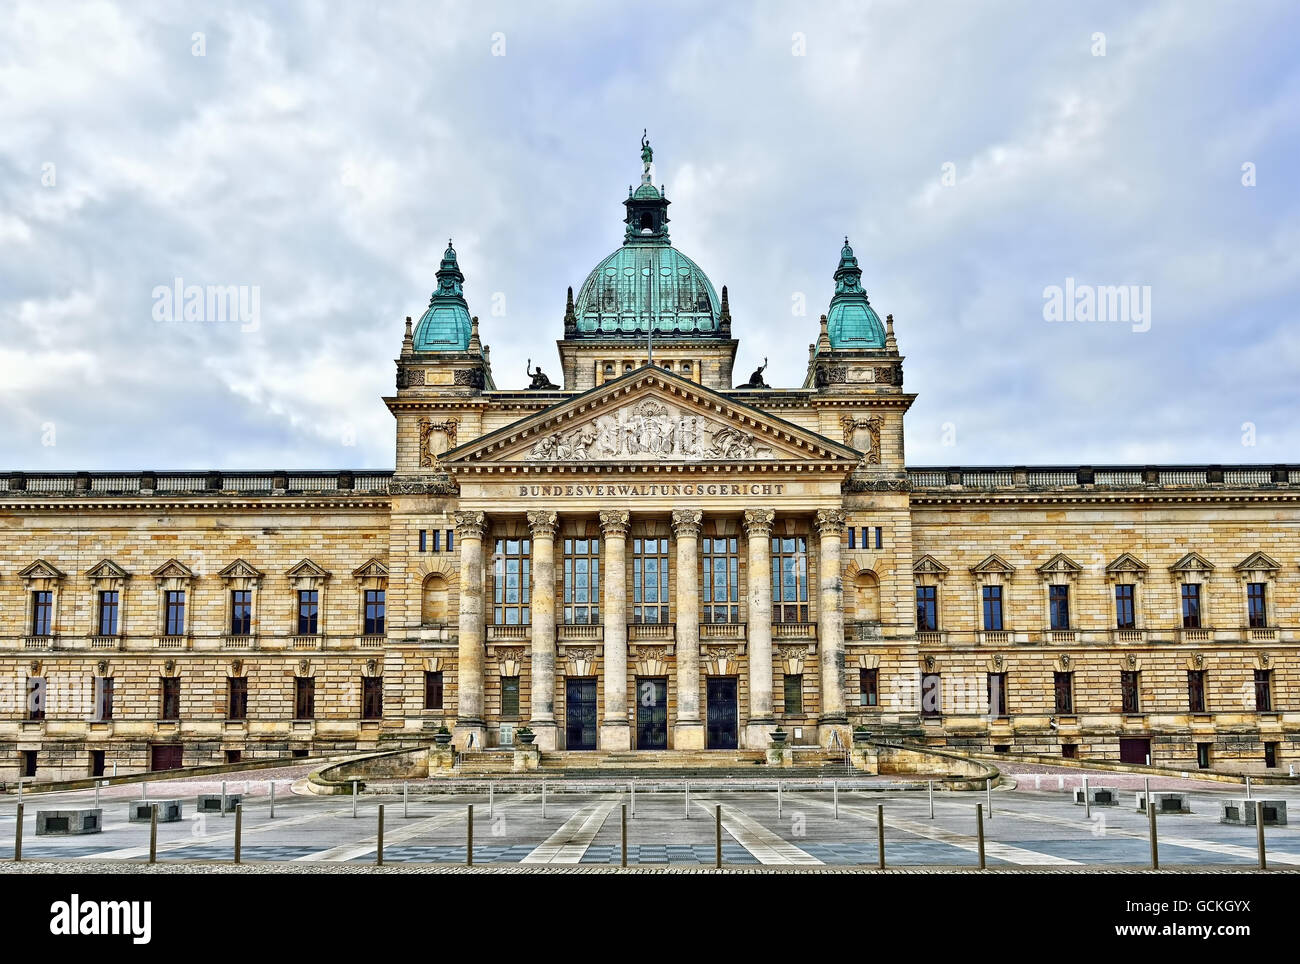 Building of Federal Administrative Court in Leipzig, Germany, in cloudy day - Stock Image